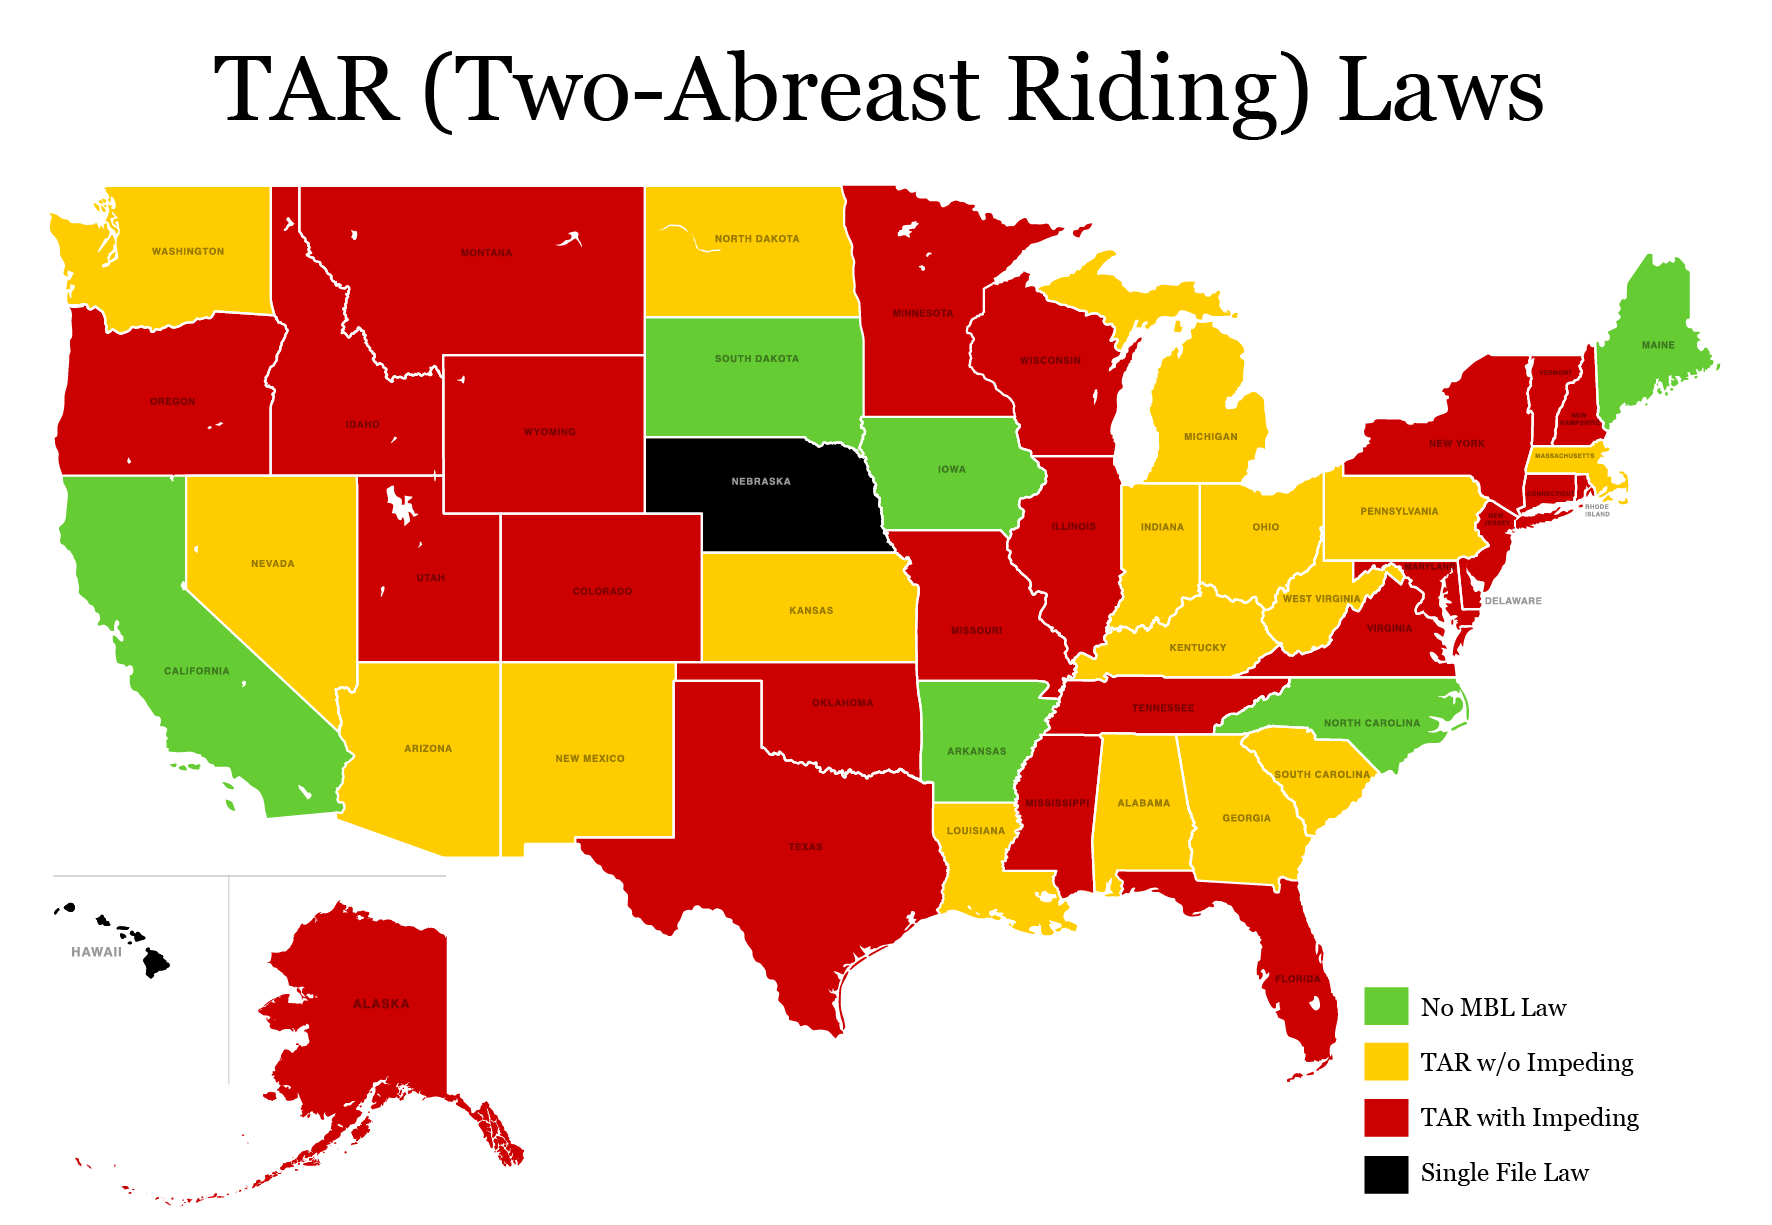 states with TAR law